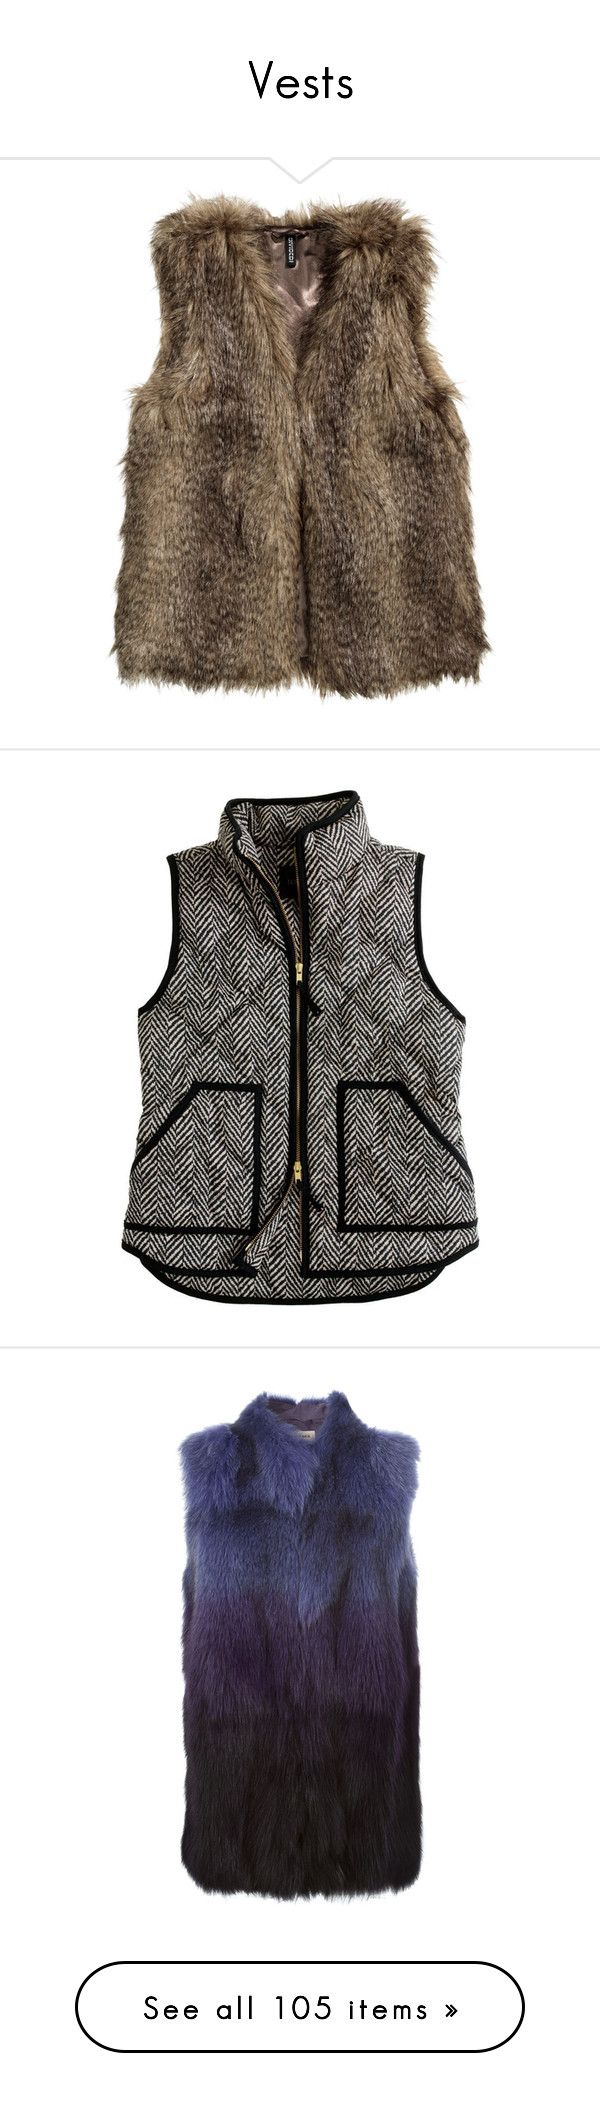 """Vests"" by pinkandgoldsparkles ❤ liked on Polyvore featuring outerwear, vests, jackets, tops, coats, brown, brown faux fur vest, fake fur vest, h&m и vest waistcoat"